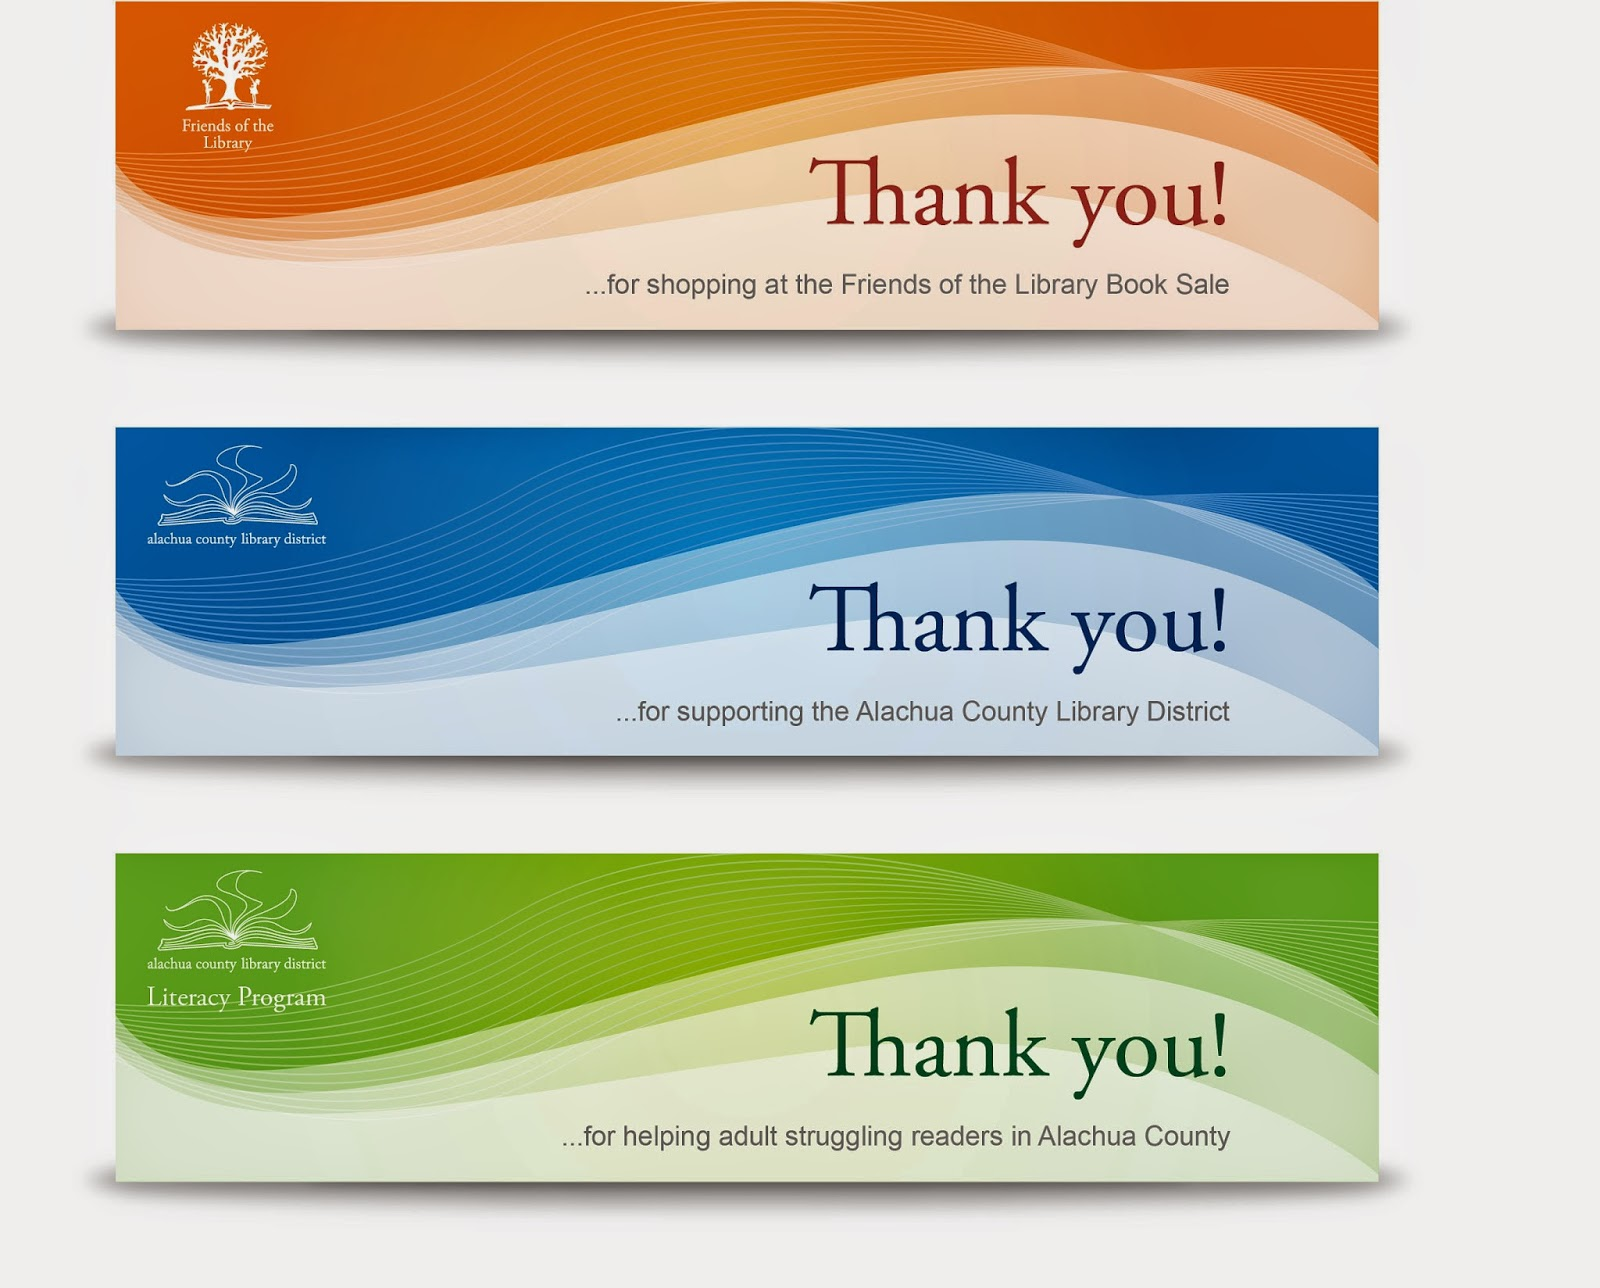 Library marketing design 201410 three 138x36 inch vinyl banners not fabricated for use after design development reheart Choice Image